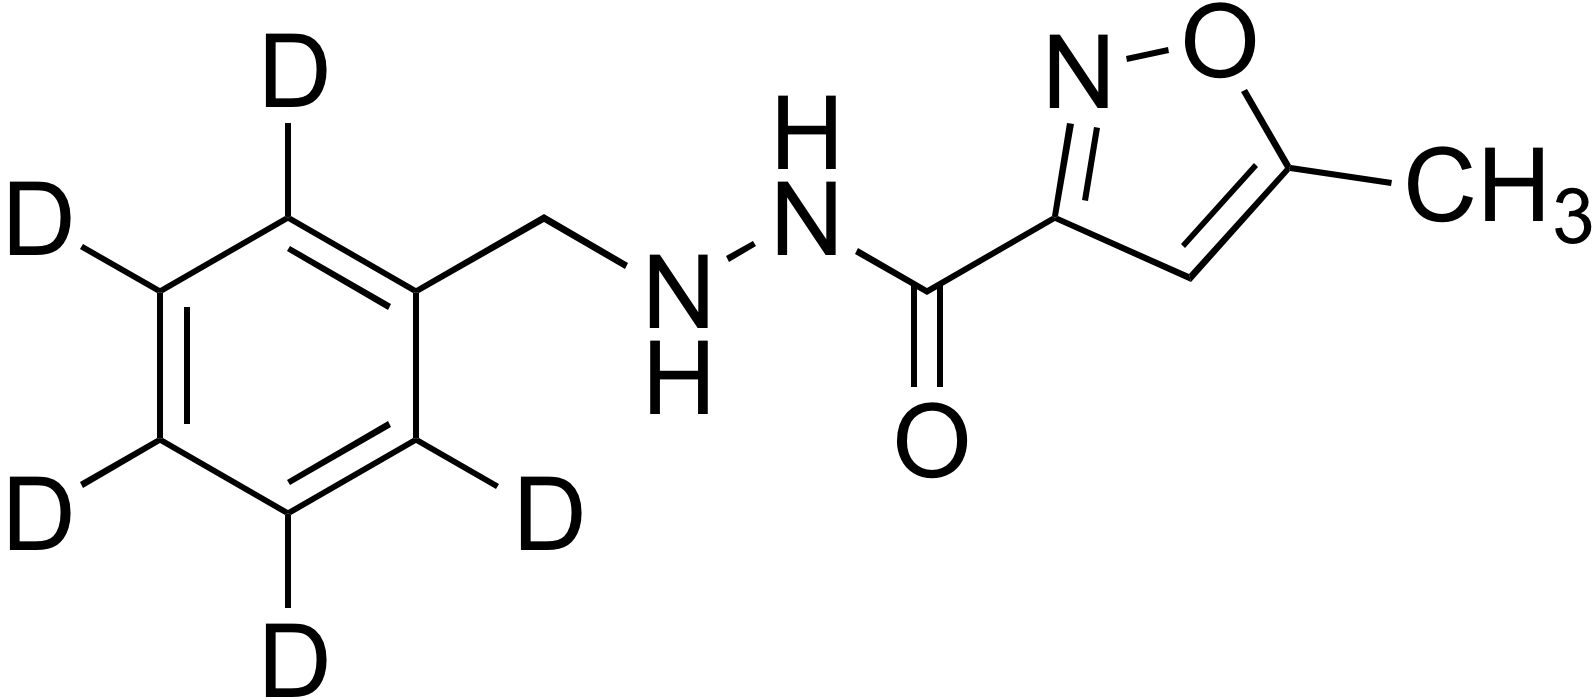 5-Methyl-3-isoxazole-carboxylic acid 2-benzyl-d<sub>5</sub>-hydrazide